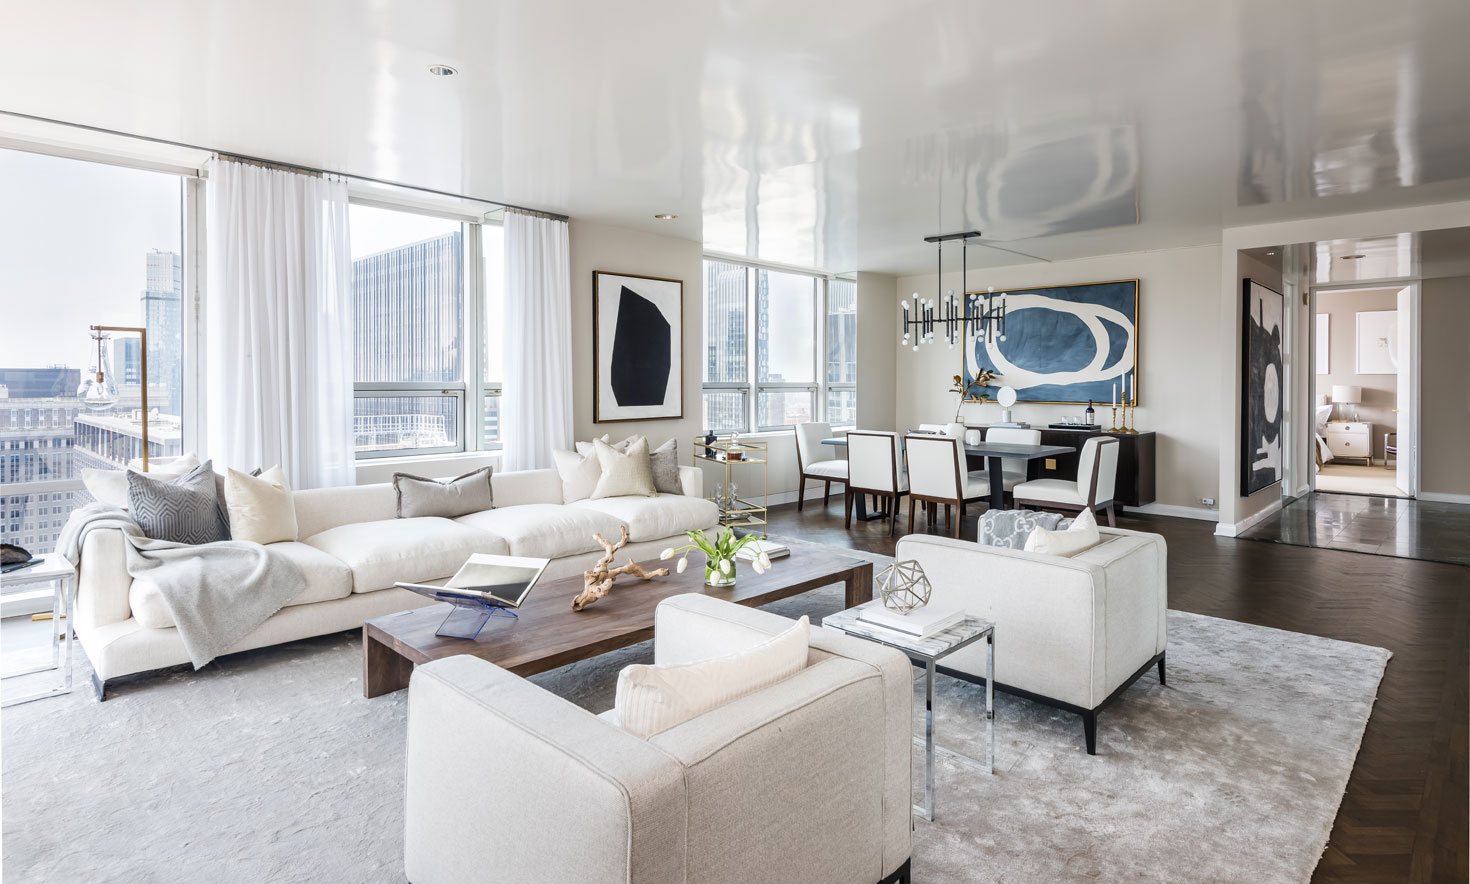 New York City's thriving art scene is world renowned. In Manhattan, The Museum of Modern Art's sculpture garden lies just below the landscaped terrace of this dazzling 50th-floor apartment.